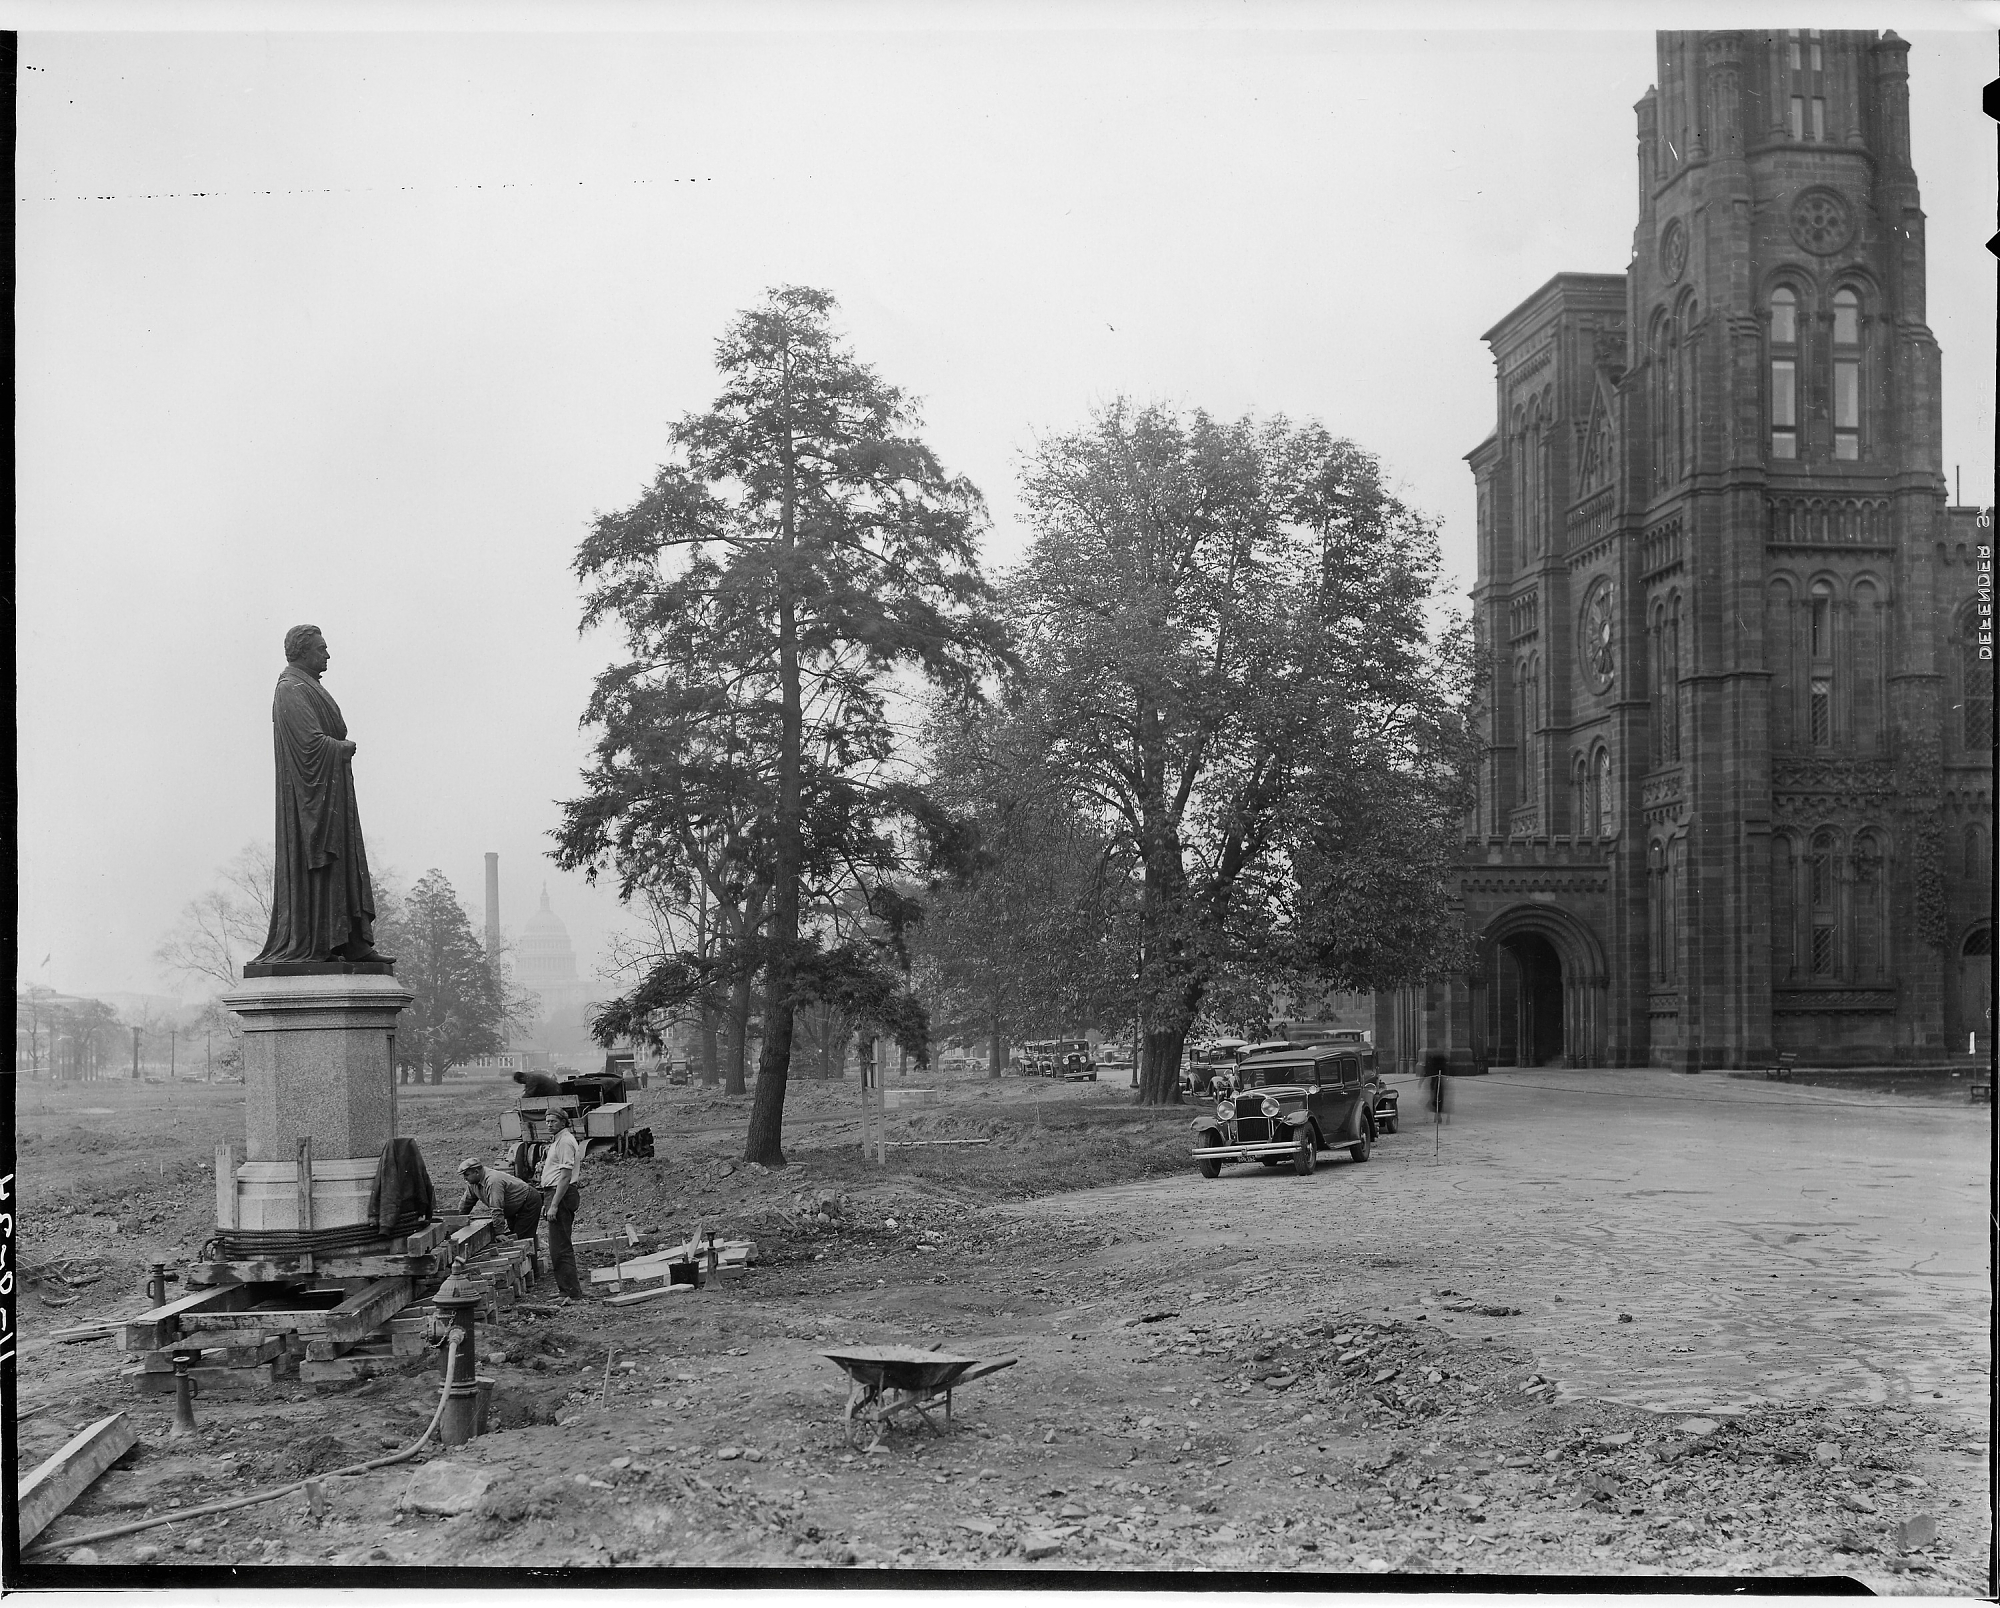 The Joseph Henry statue looks toward the Castle, the place Henry worked and called home until the end of his life. Courtesy of the Smithsonian Institution Archives.